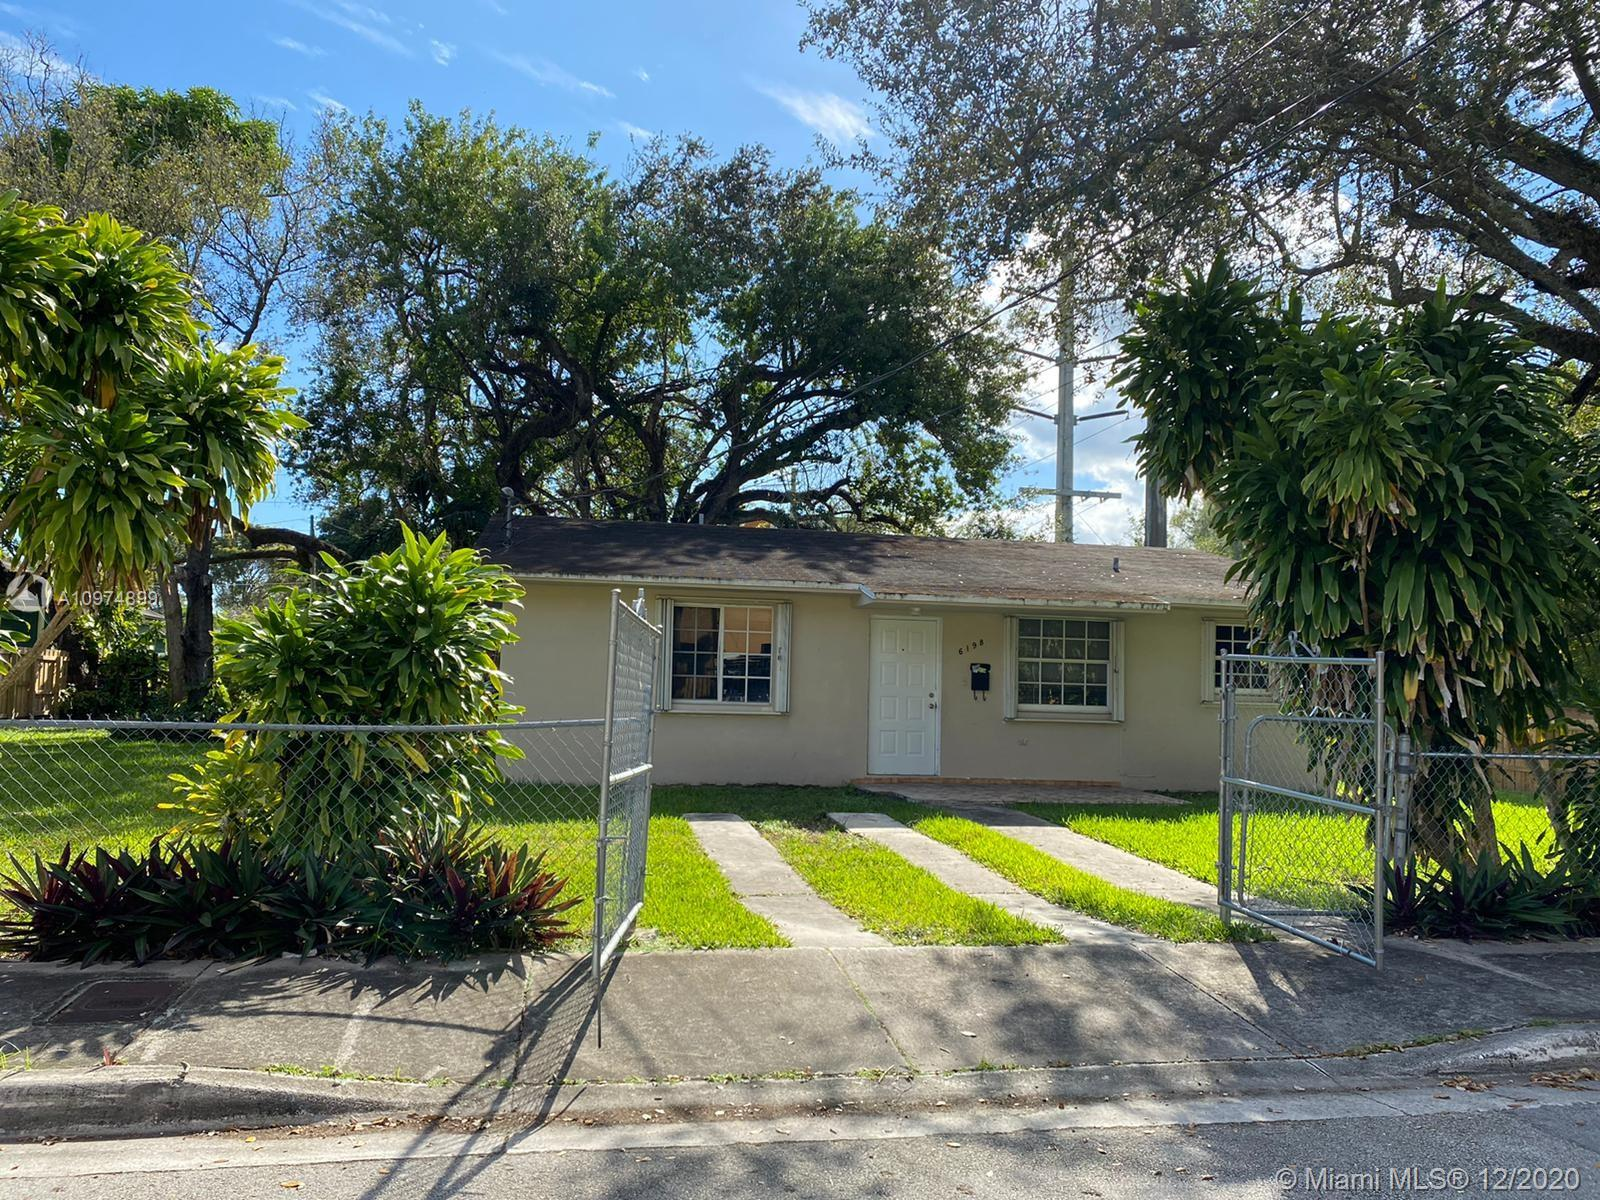 South Miami deal!! Absolutely charming home centrally located in sought after area! Great home light bright and airy.Upgraded home features 3/2 with a wonderful large backyard. Beautiful trees and lush foliage. Amazing property with fully fenced large corner lot.  Located close to South Miami hospital, University of Miami, Sunset Place, Metro rail, shopping, entertainment, restaurants and so much more! Bring offers now! Prime convenient location close to all. $439,000. easy to show